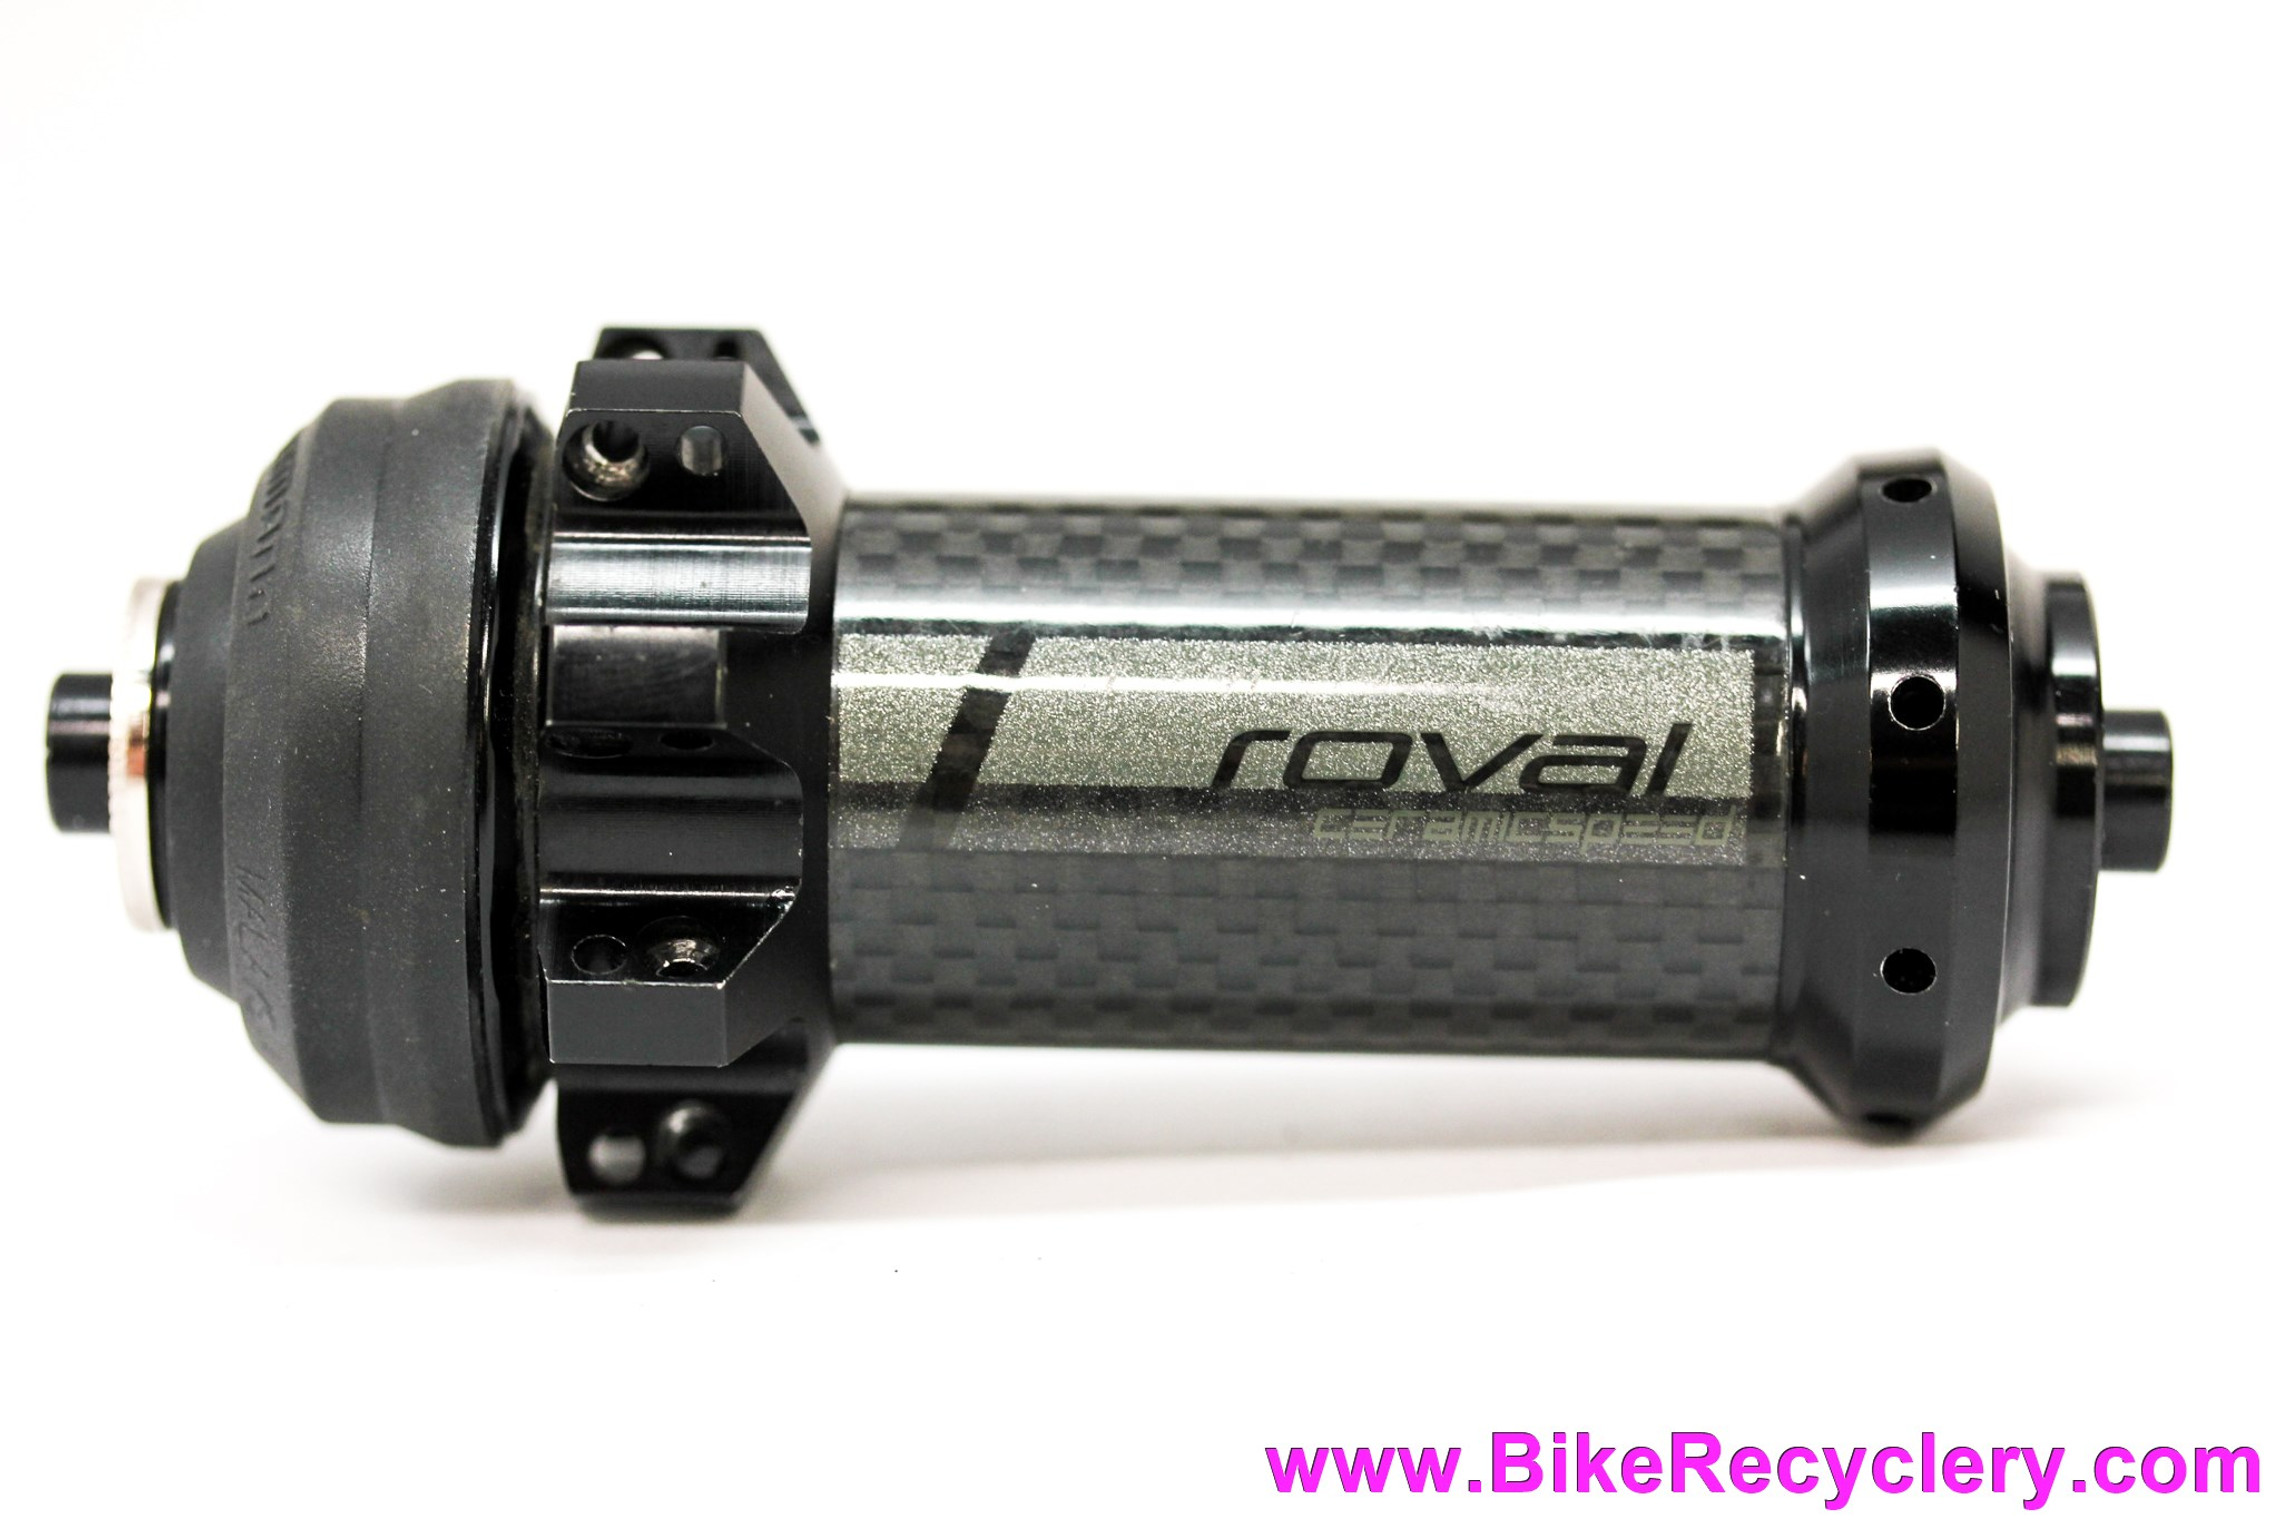 Roval CeramicSpeed CLX 40 Disc Centerlock FRONT Hub: 24H - Carbon - Radial+Straight Pull (Take Off?)